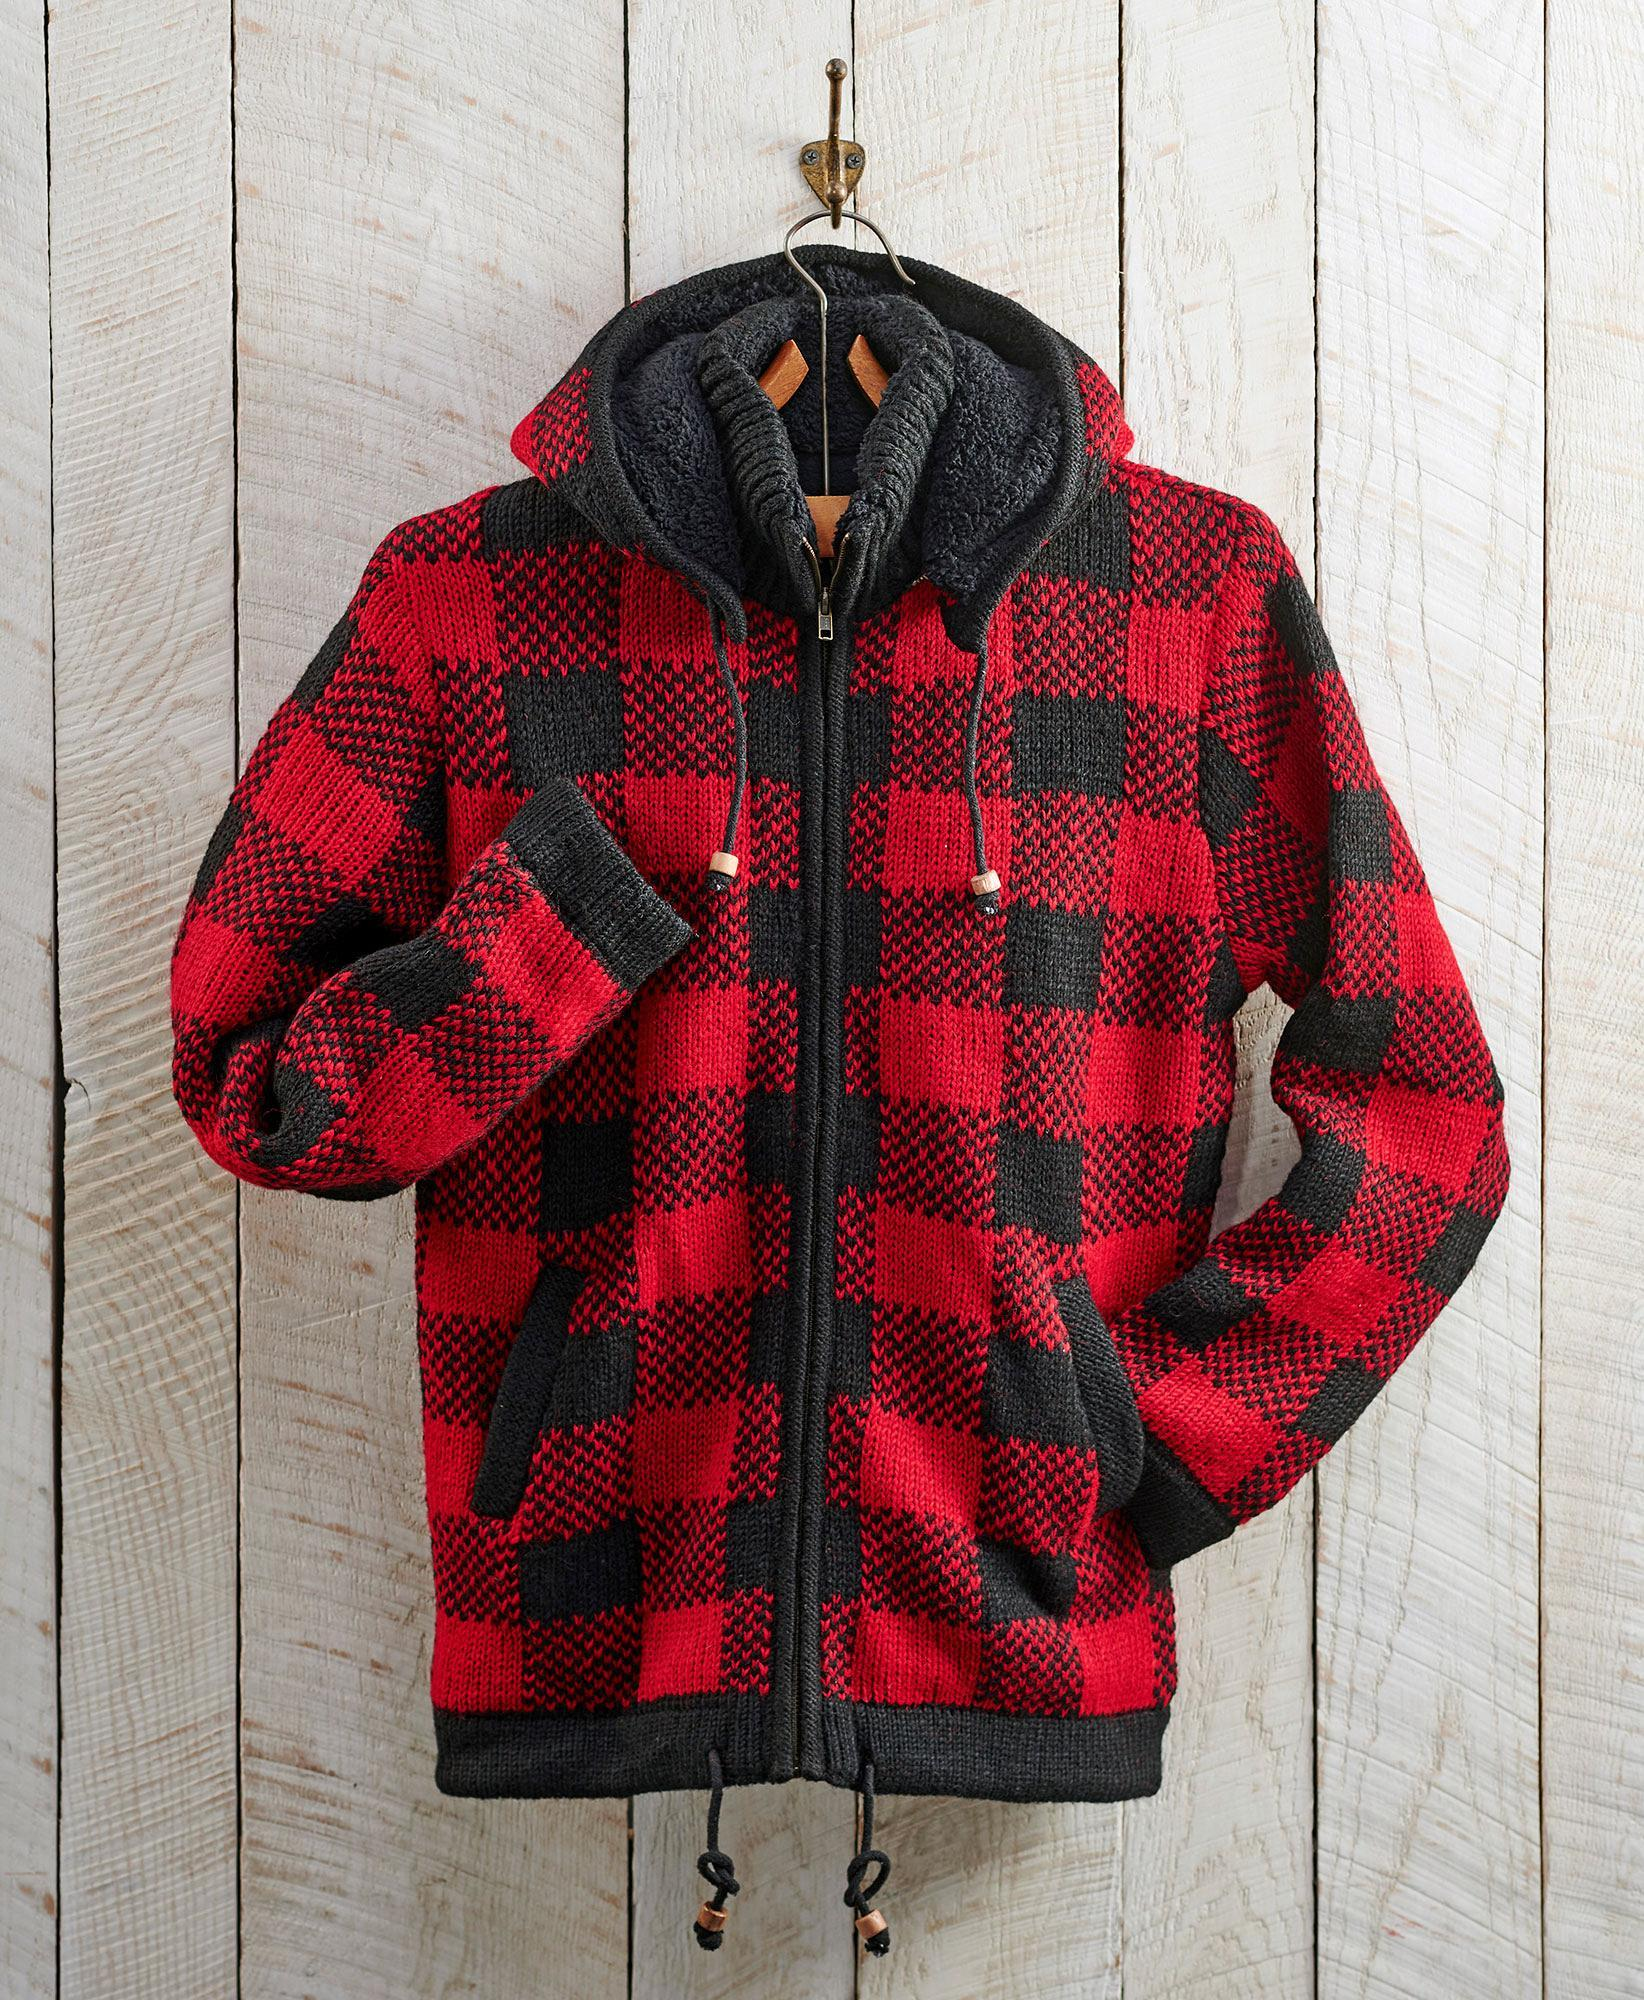 Red Plaid Sweater Jacket